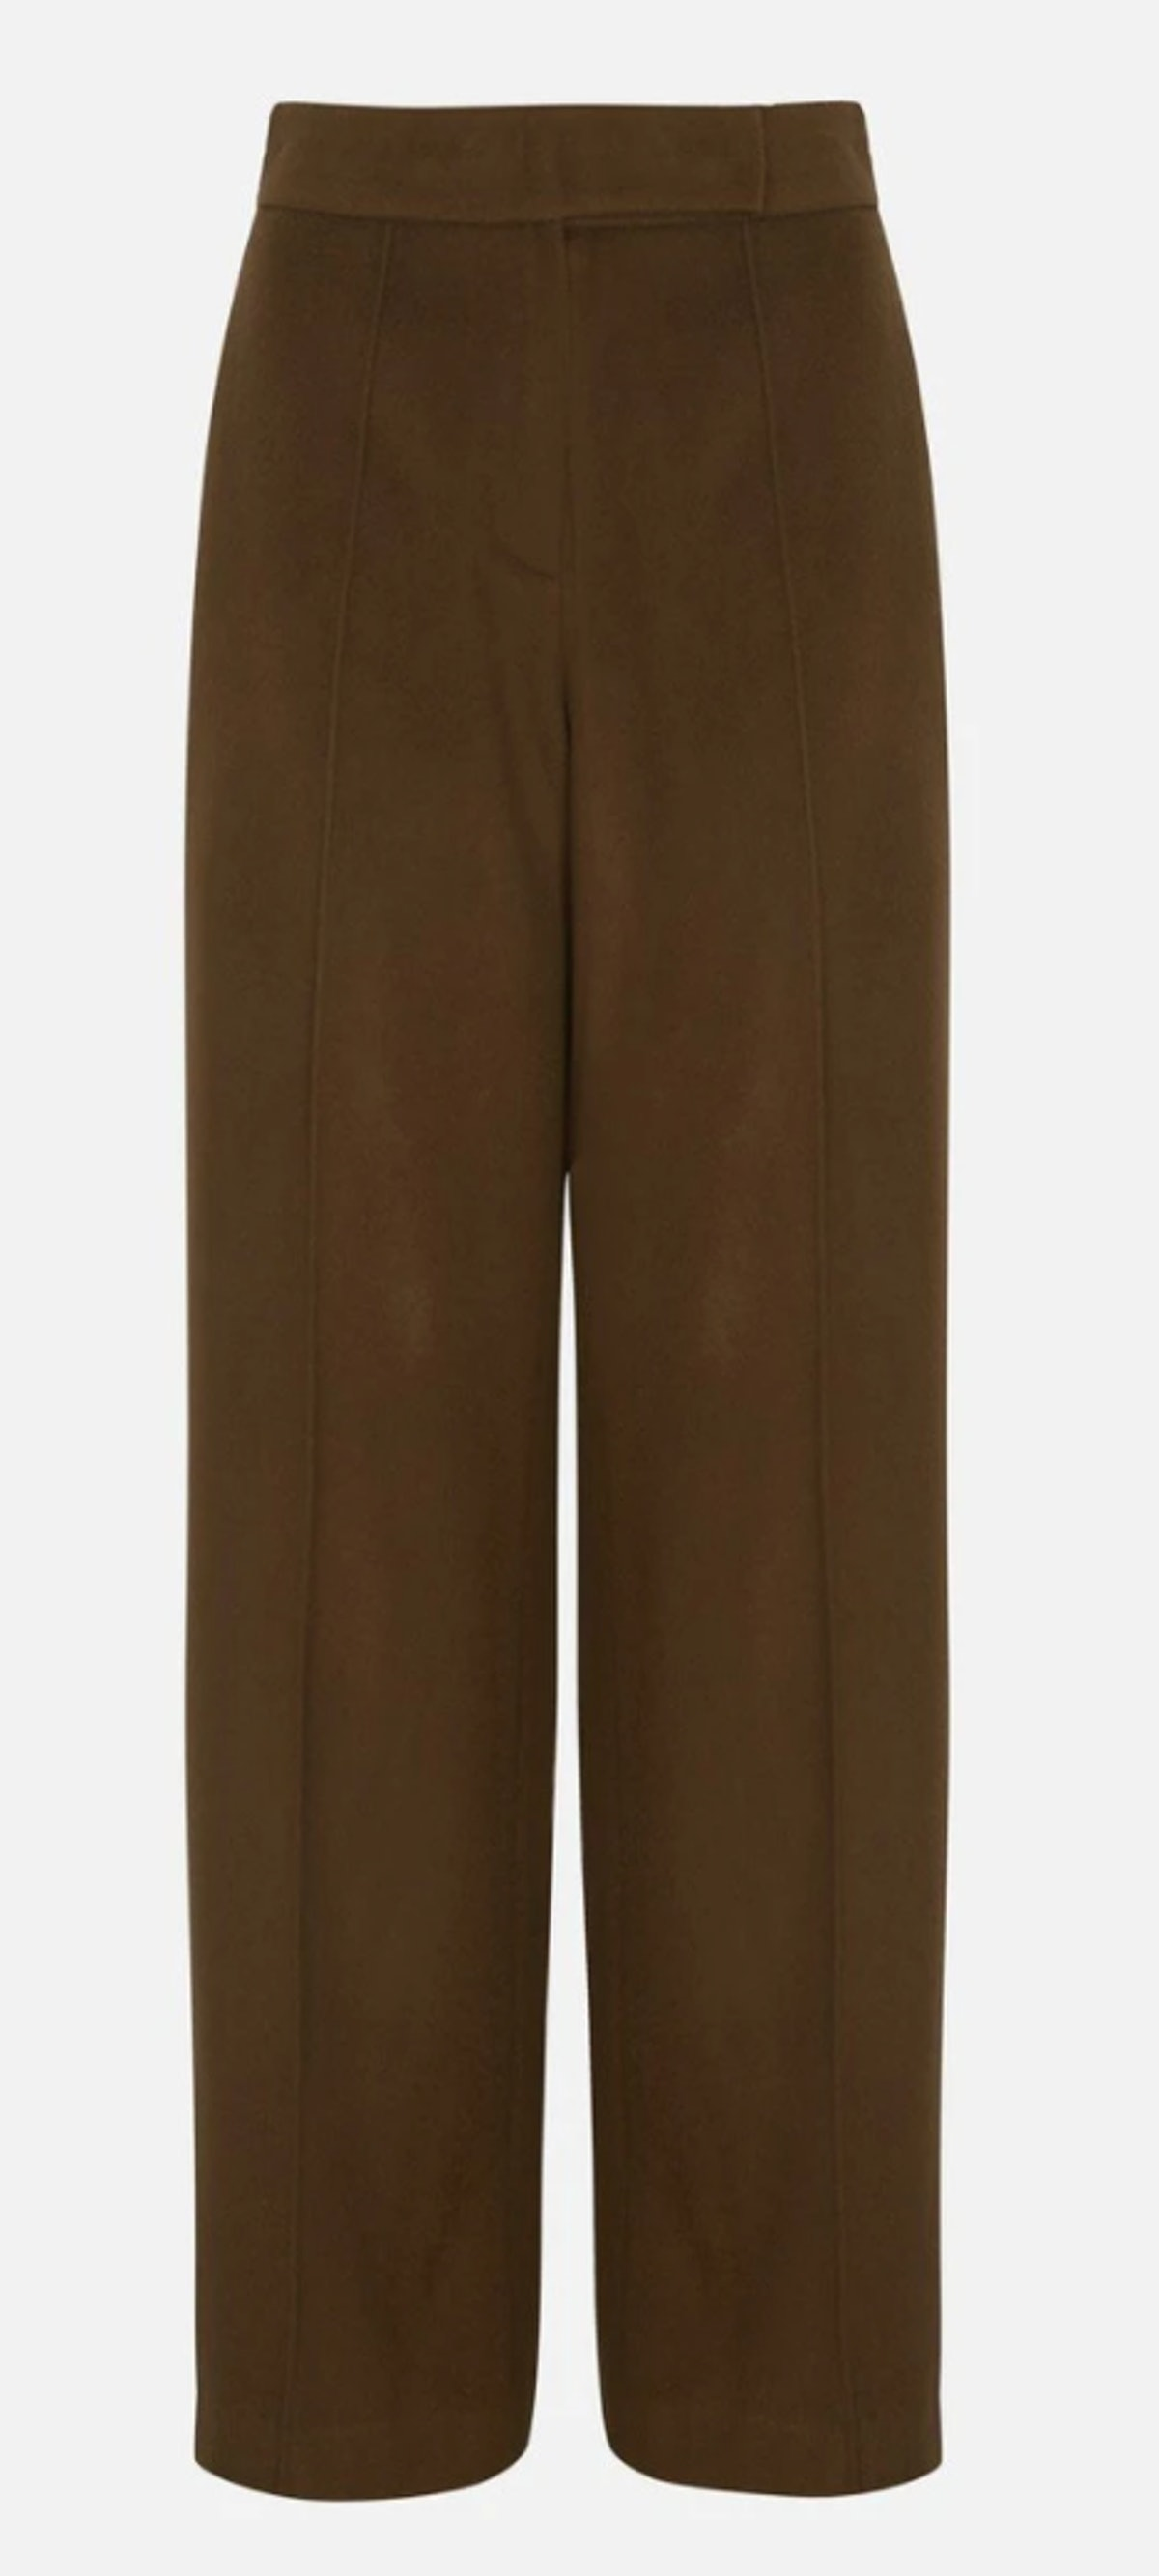 The Frankie Shop Danu Belted Trousers